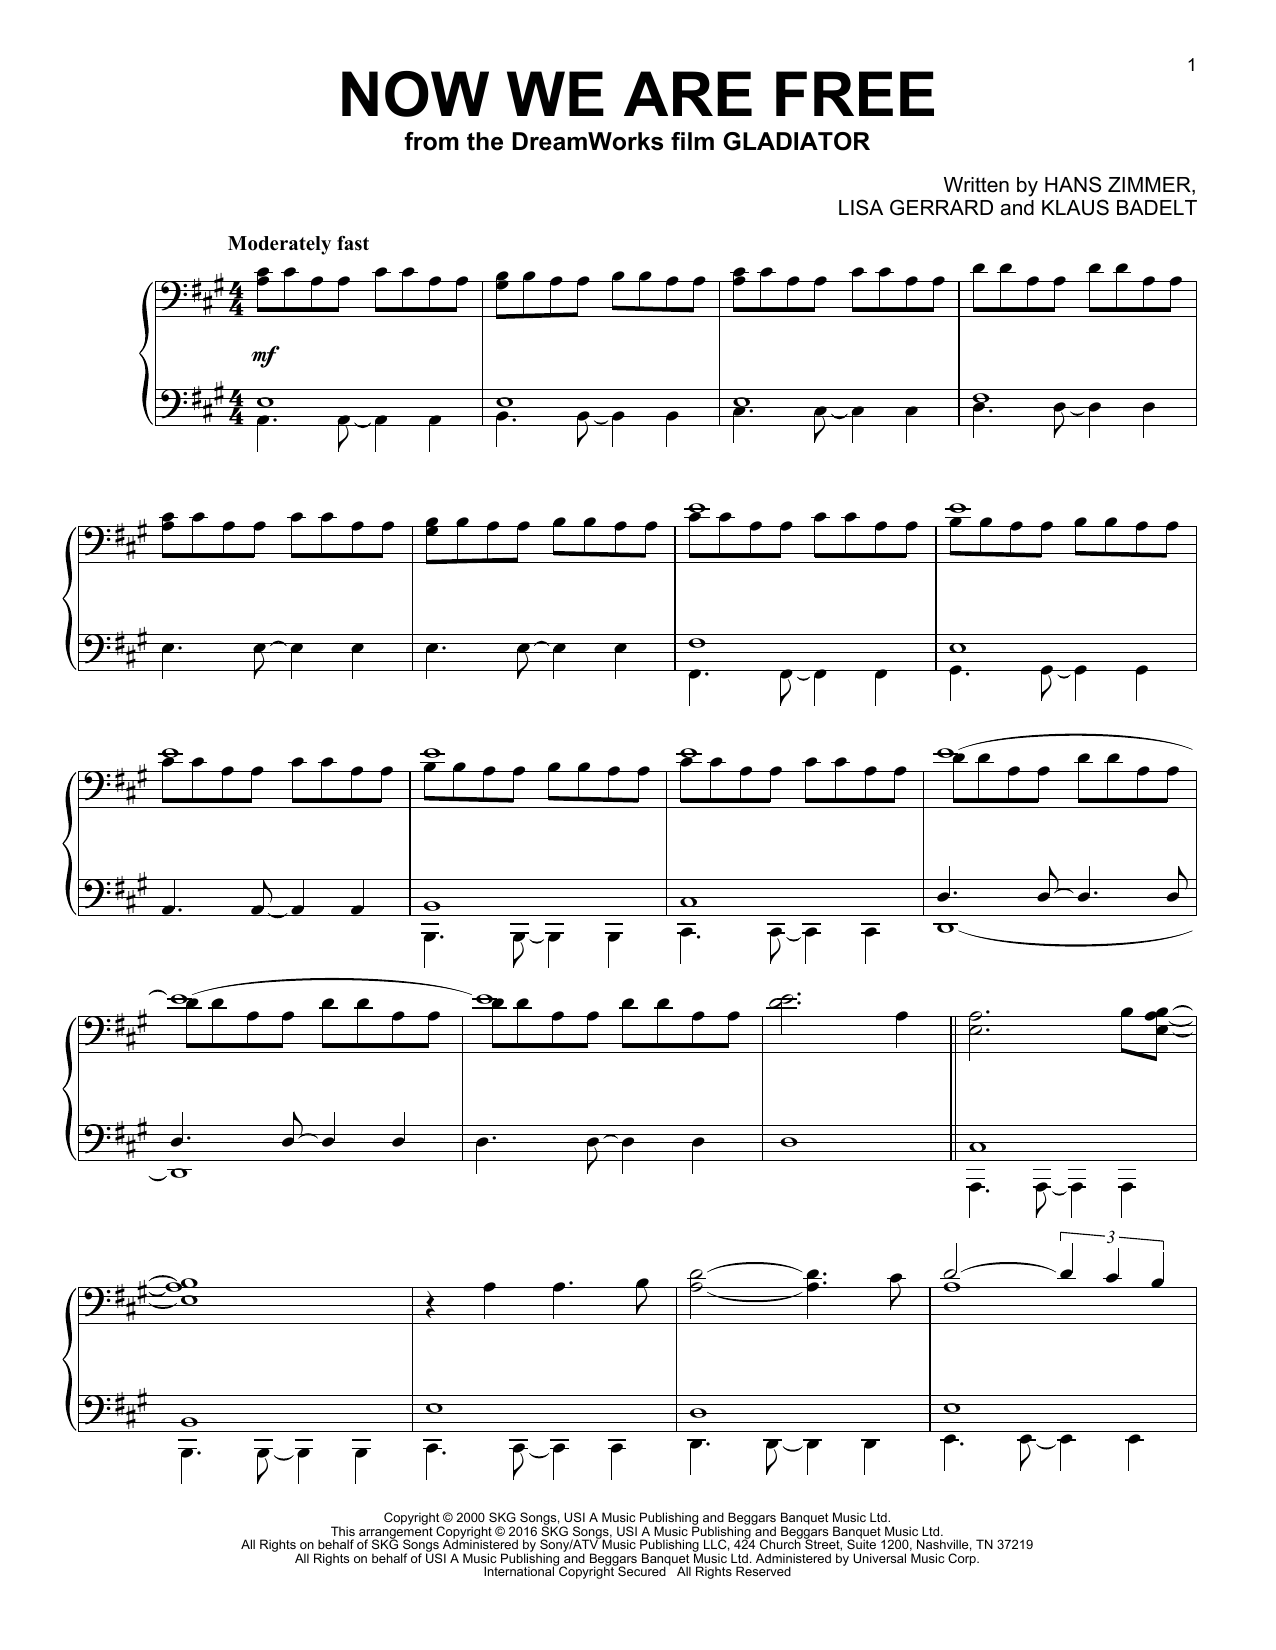 Download Klaus Badelt 'Now We Are Free' Digital Sheet Music Notes & Chords and start playing in minutes